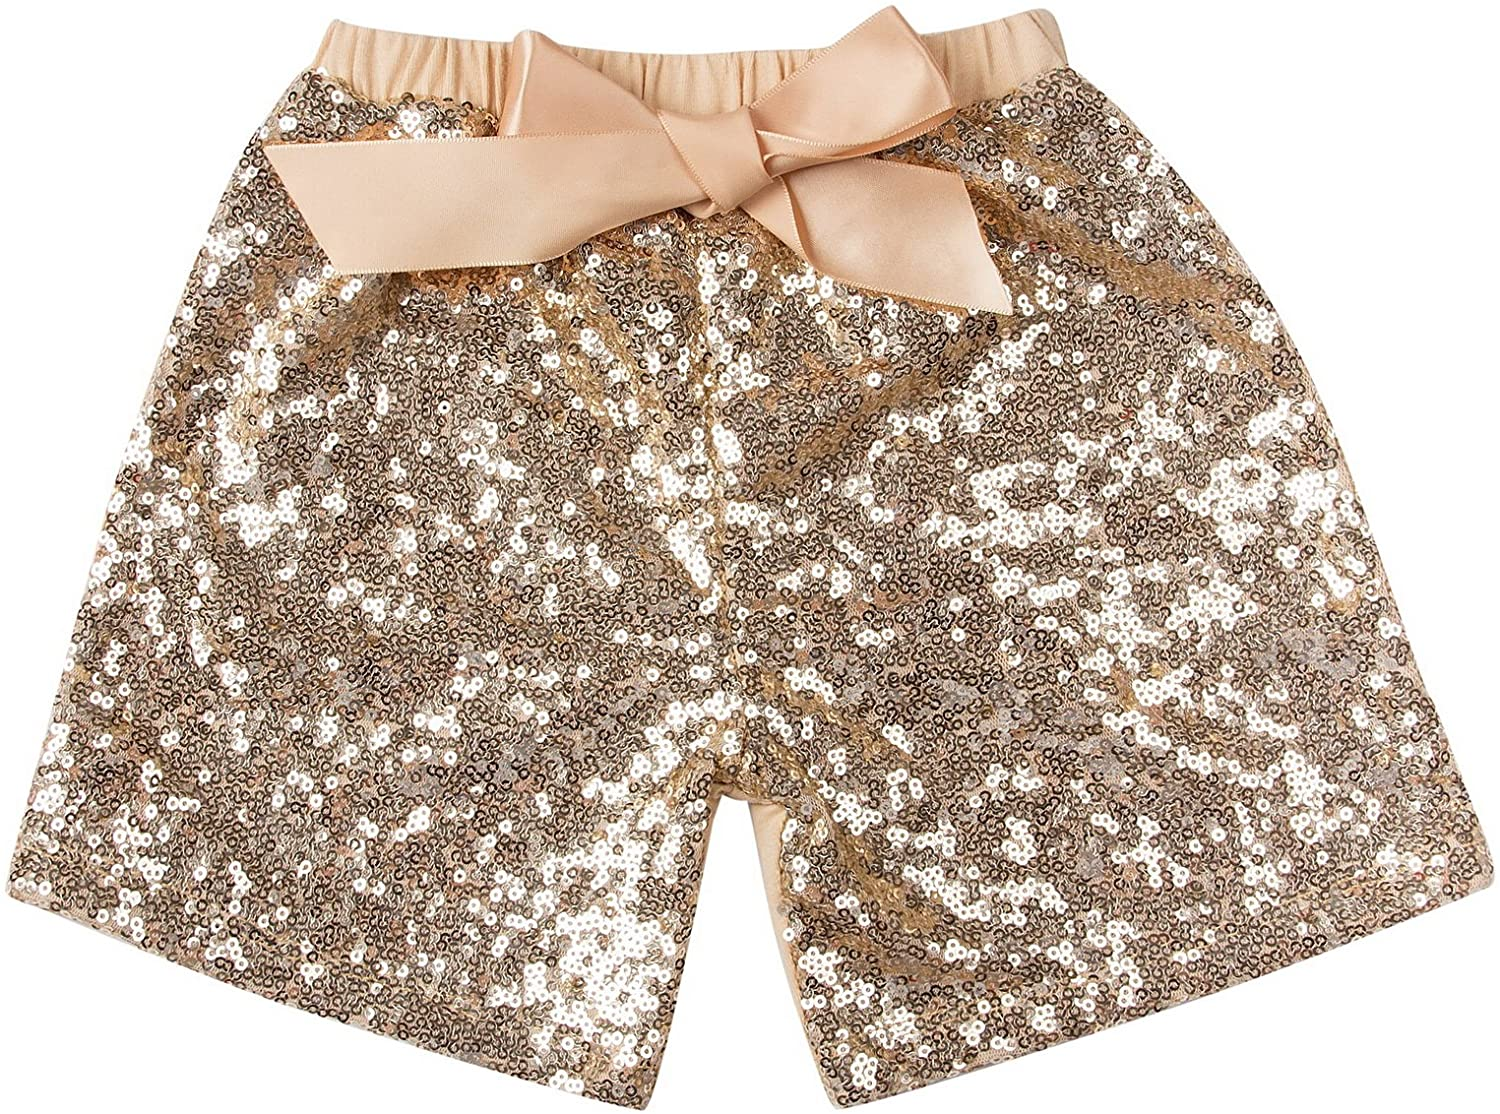 Messy Code Baby Girls Shorts Toddlers Short Sequin Pants with Bow: Clothing